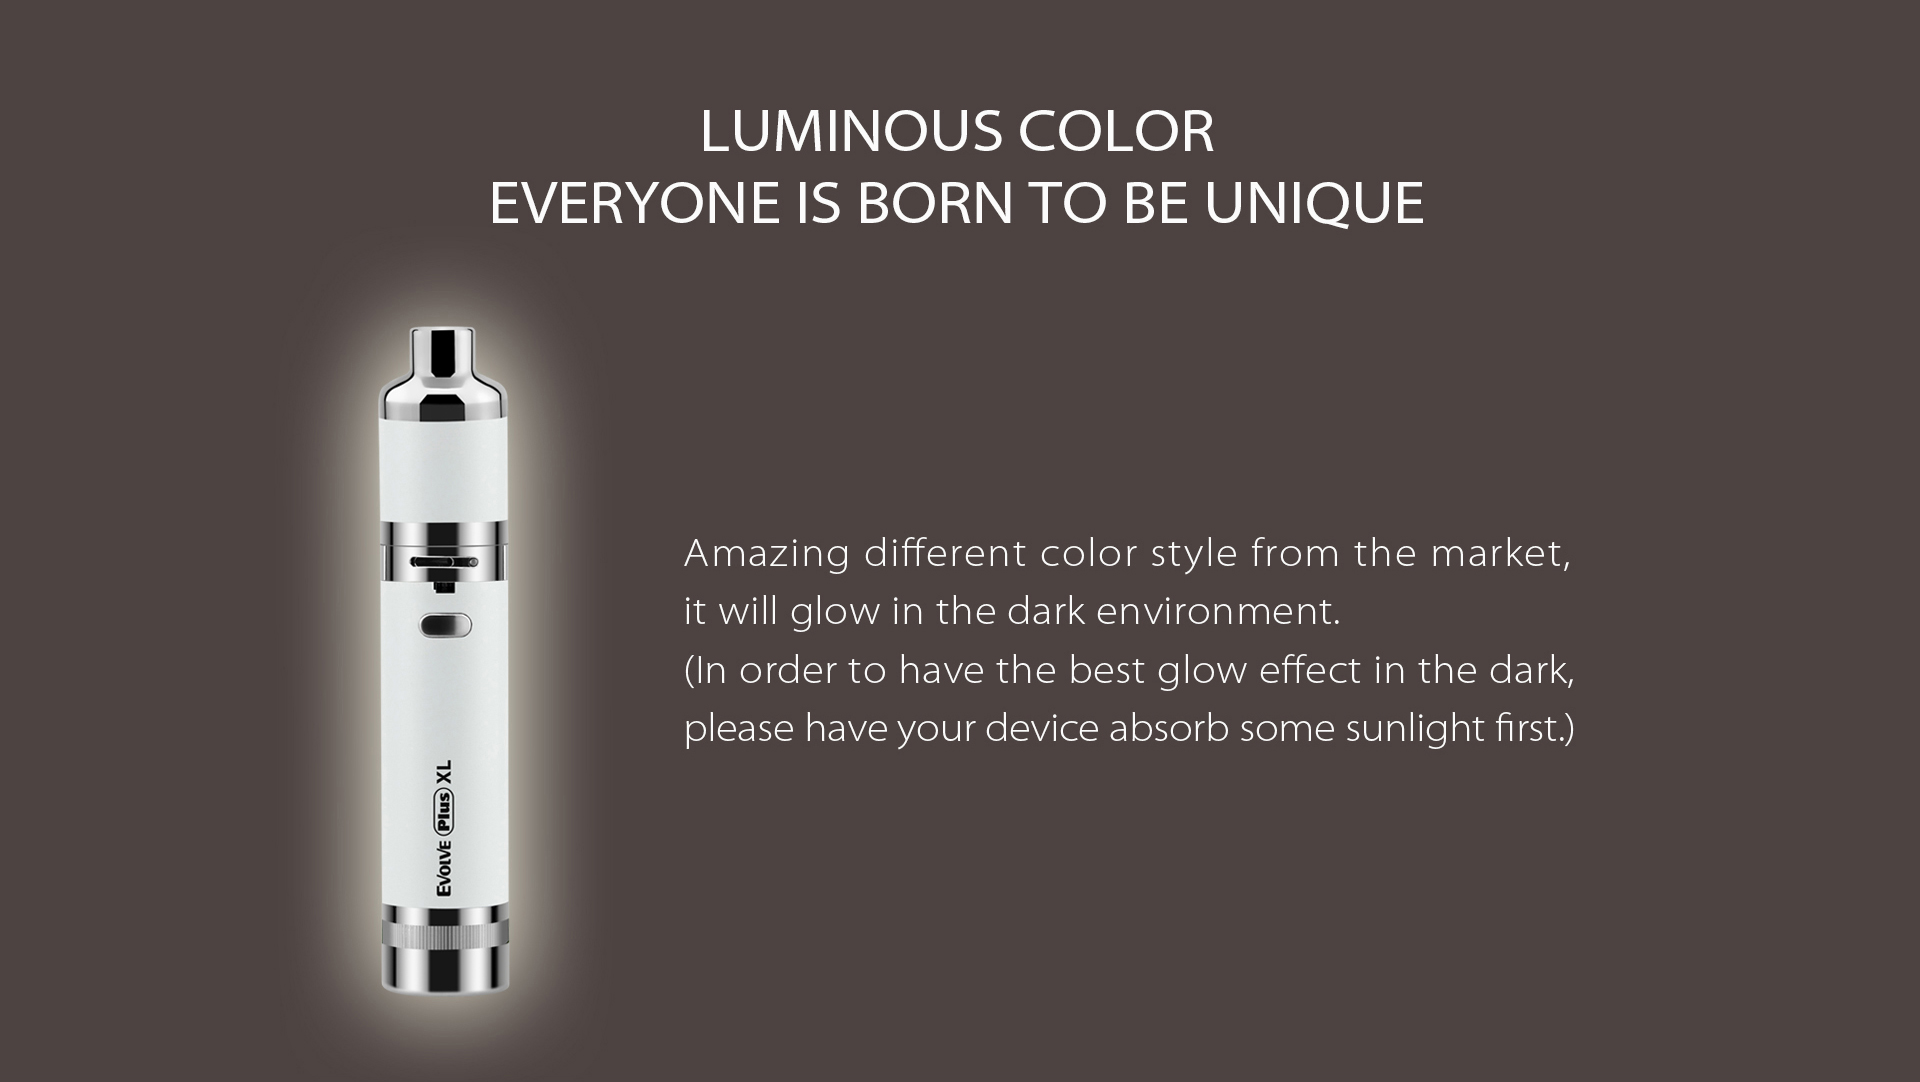 Yocan Evolve Plus XL Vaporizer 2020 version(luminous color) will glow in the dark environment.